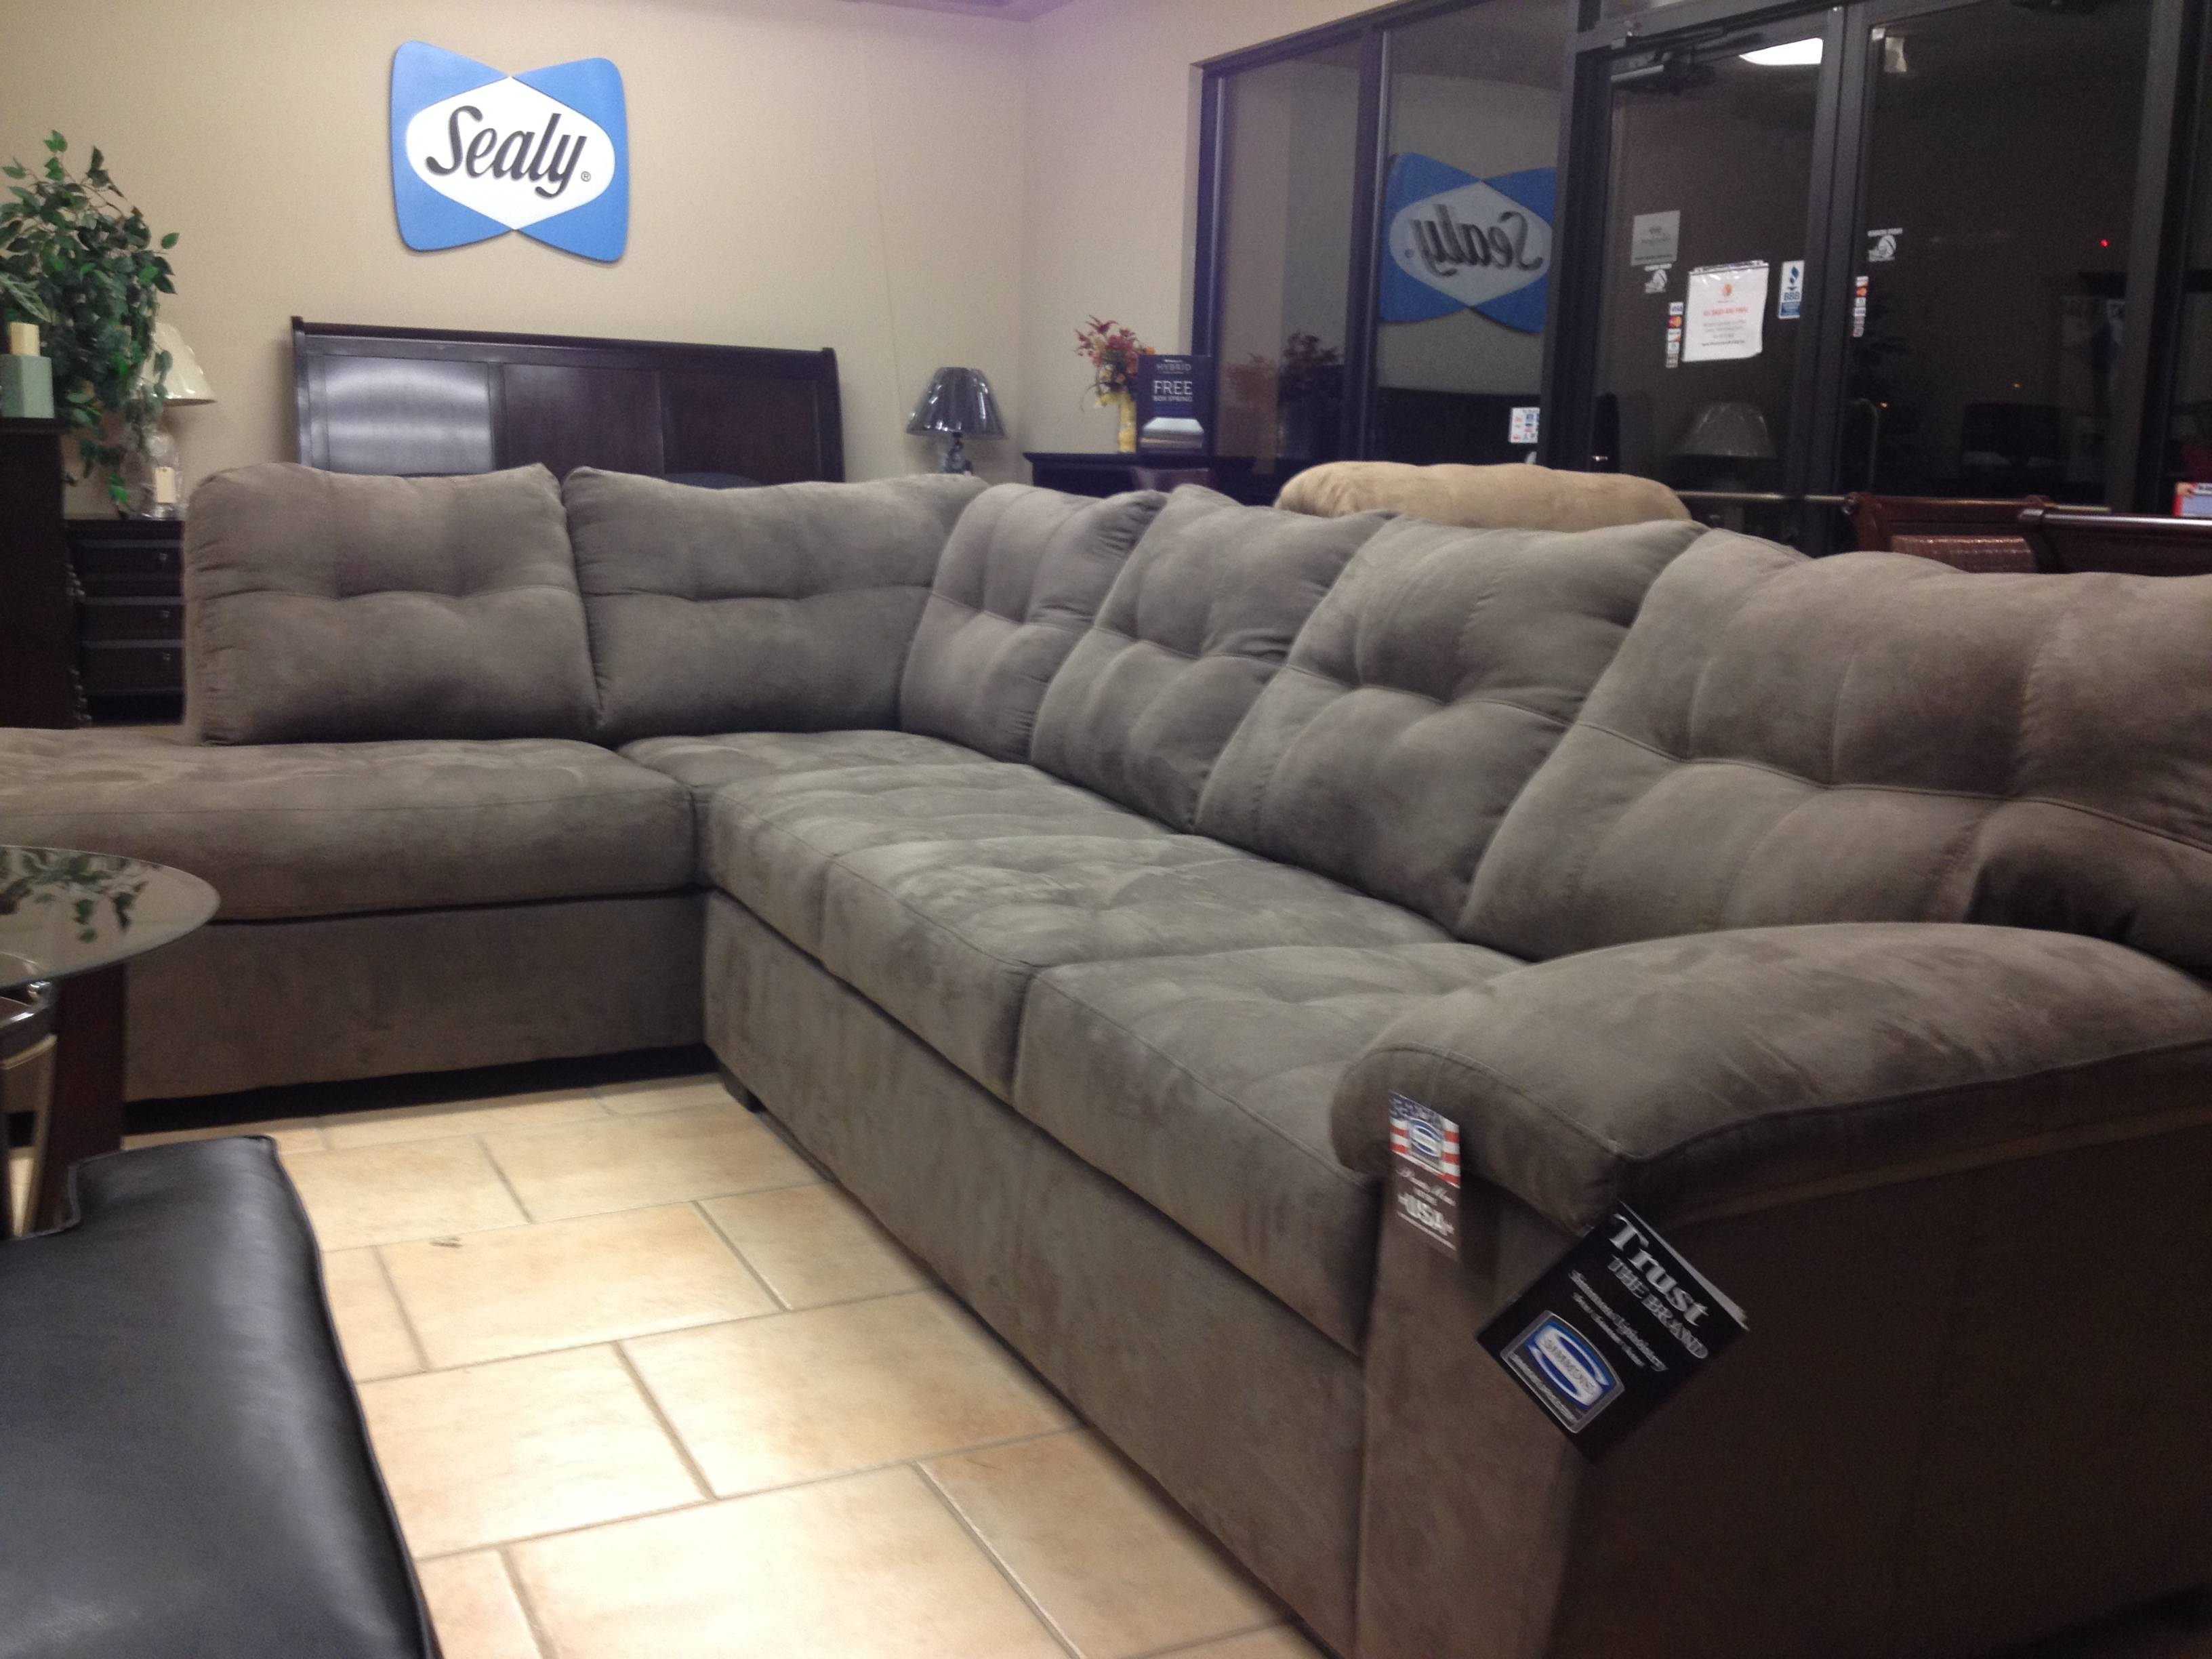 December 2015 – Chico Furniture Direct 4 U Pertaining To Sealy Leather Sofas (Photo 9 of 15)